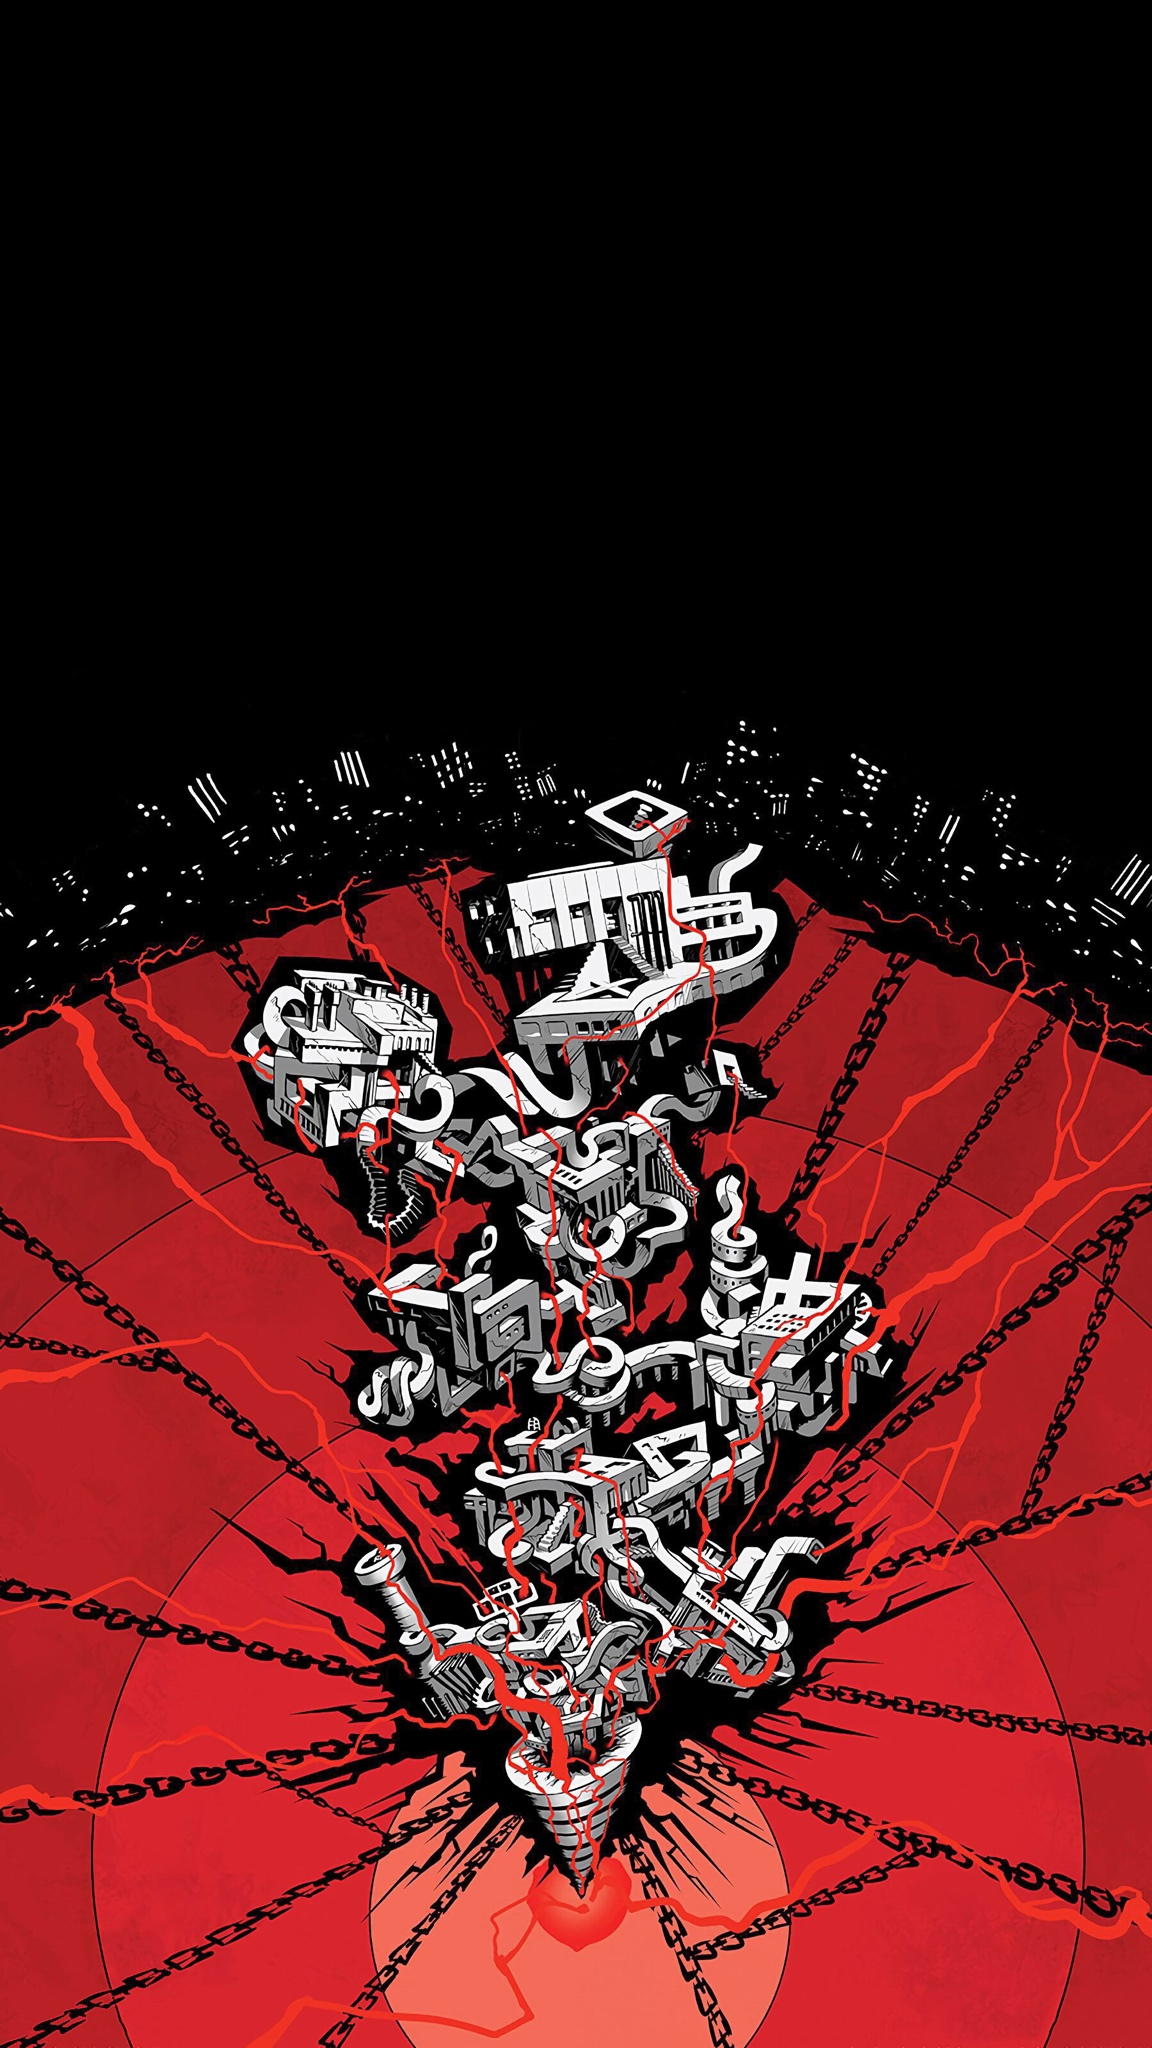 Persona 5 Mementos Wallpaper Iphone Android Samsung - Persona 5 Mementos Map , HD Wallpaper & Backgrounds